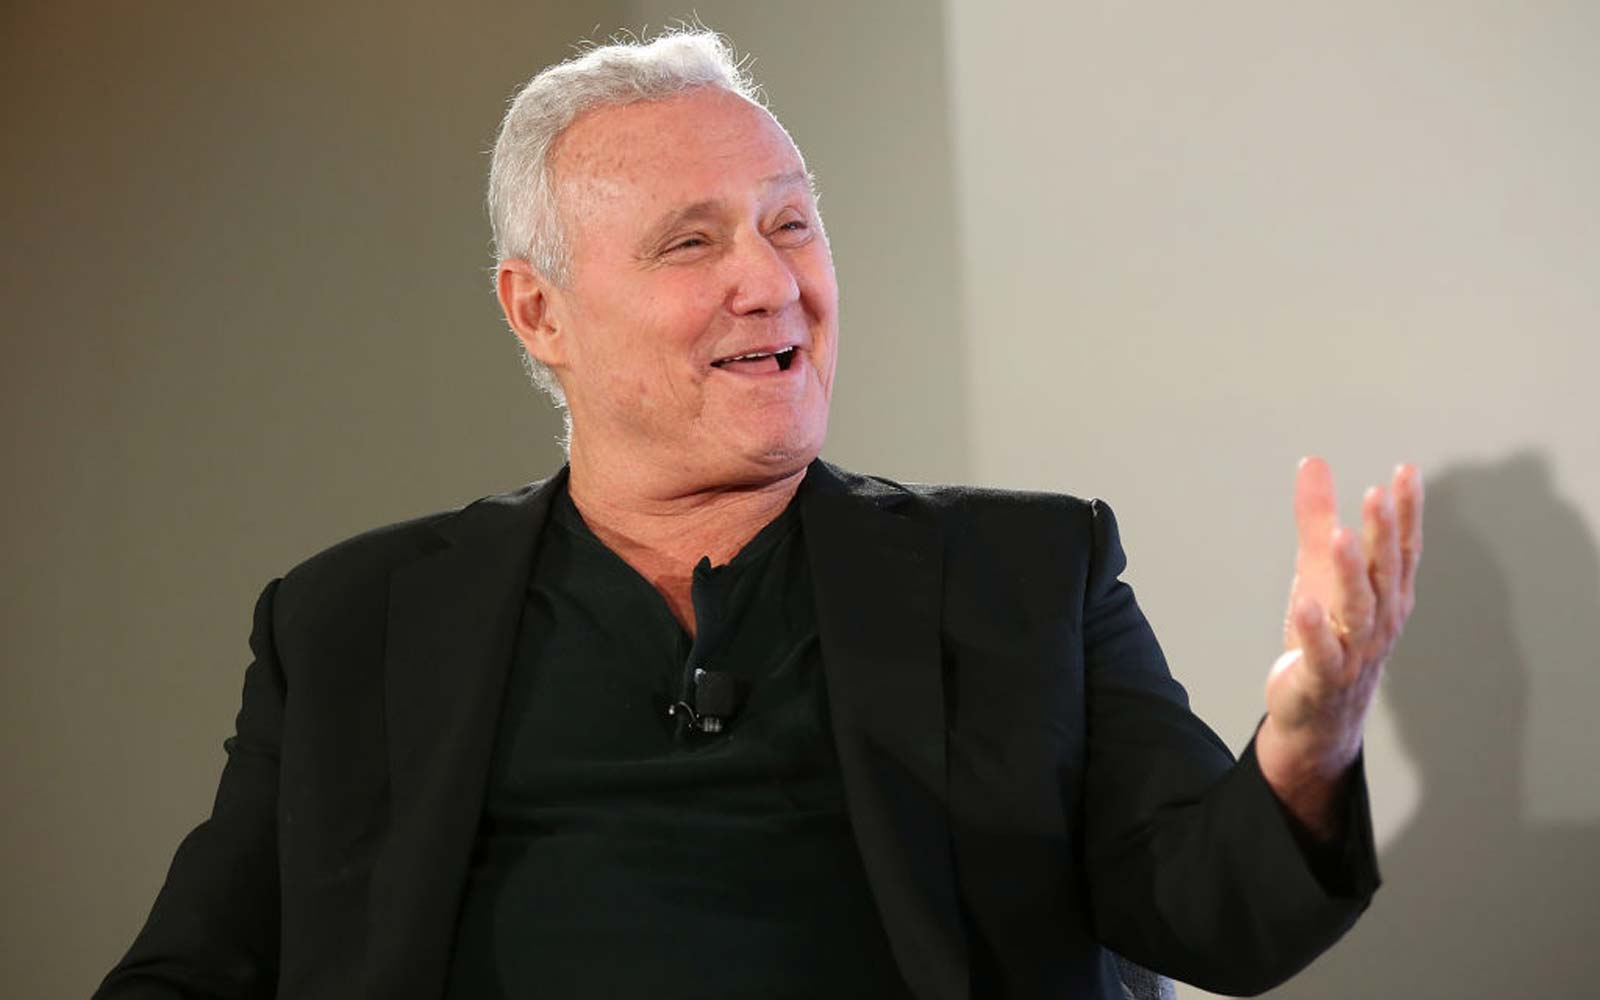 Legendary Hotelier Ian Schrager Says Luxury Hotels Are Going to Transform in 2 Major Ways in the Next 10 Years